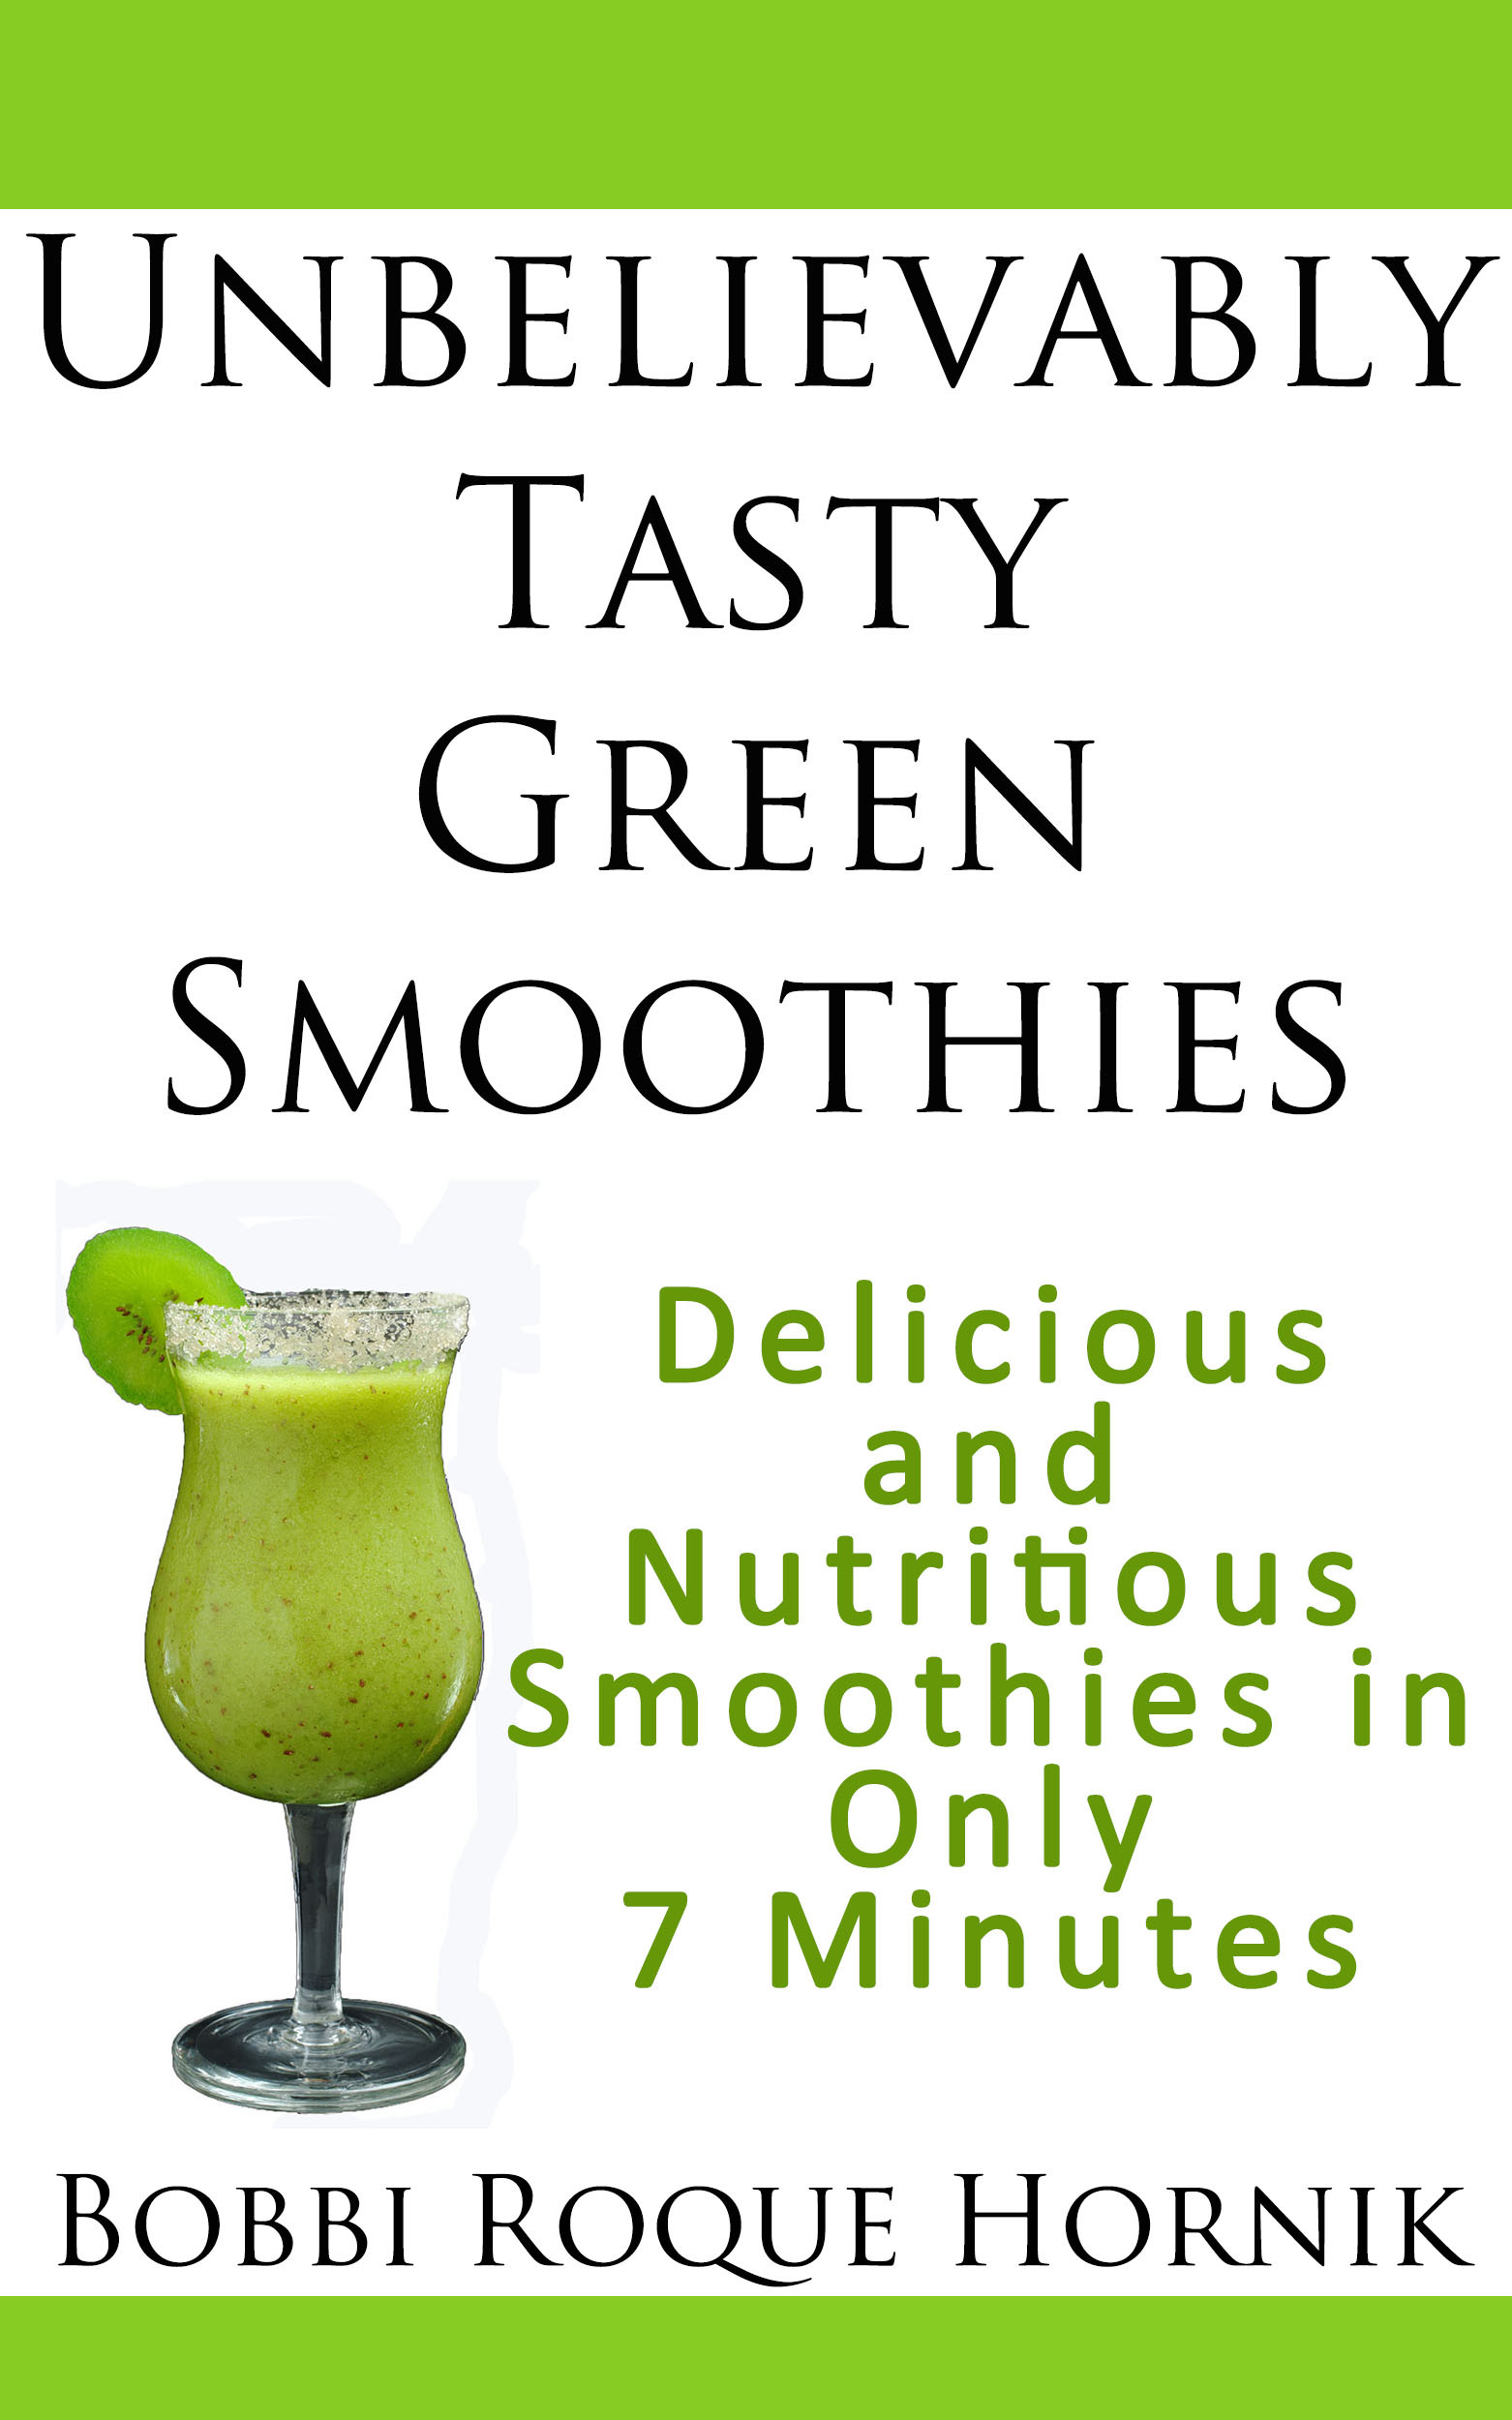 Unbelievably Tasty Green Smoothies: Delicious and Nutritious Smoothies in Only 7 Minutes